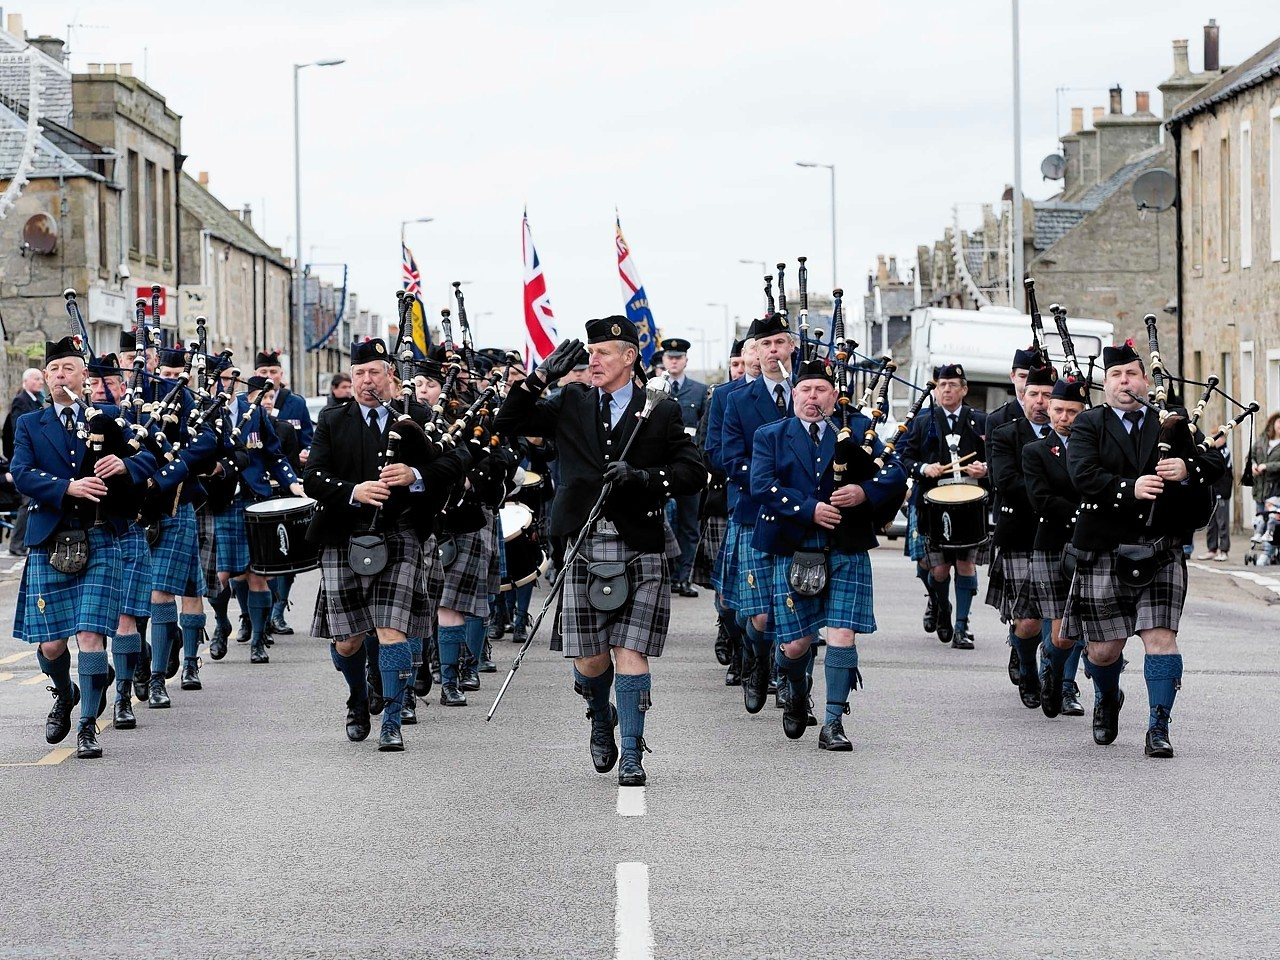 RAF Lossiemouth take the salute before the laying of wreaths at the war memorial Esplanade at Lossiemouth